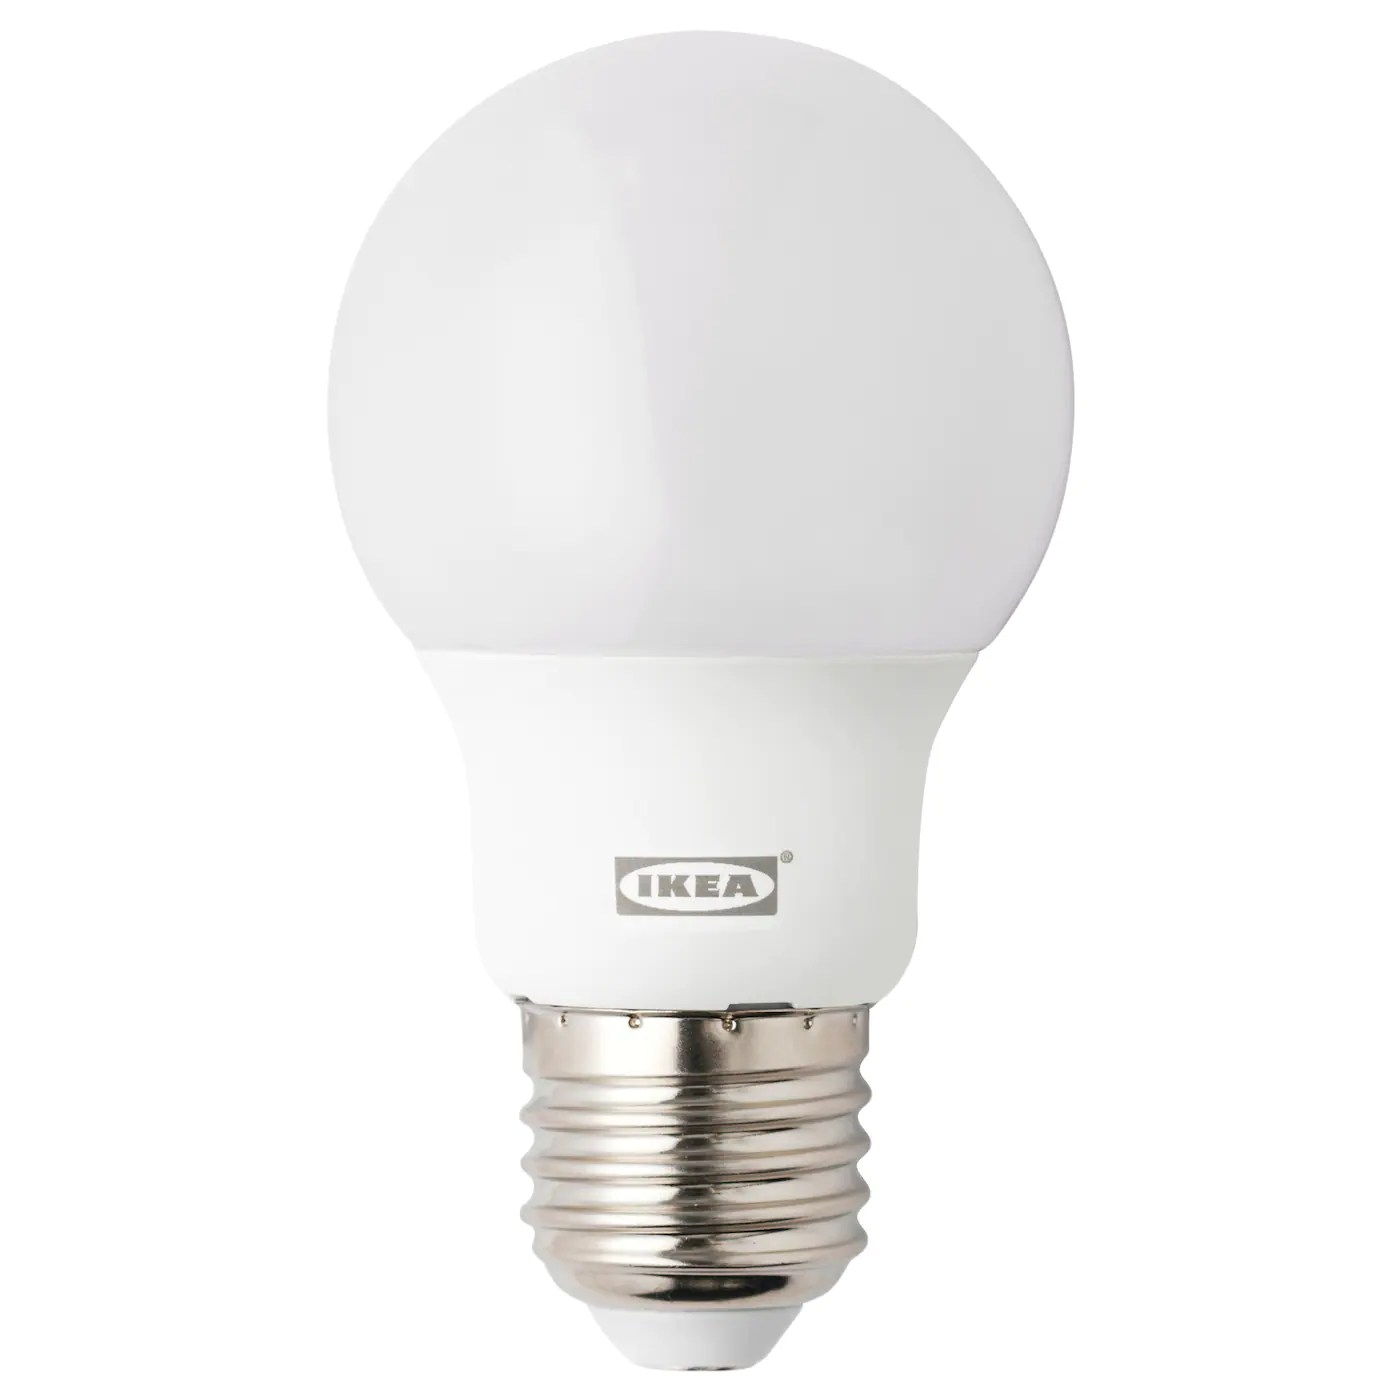 Led Hanglamp Ikea Verlichting And Lampen Ikea